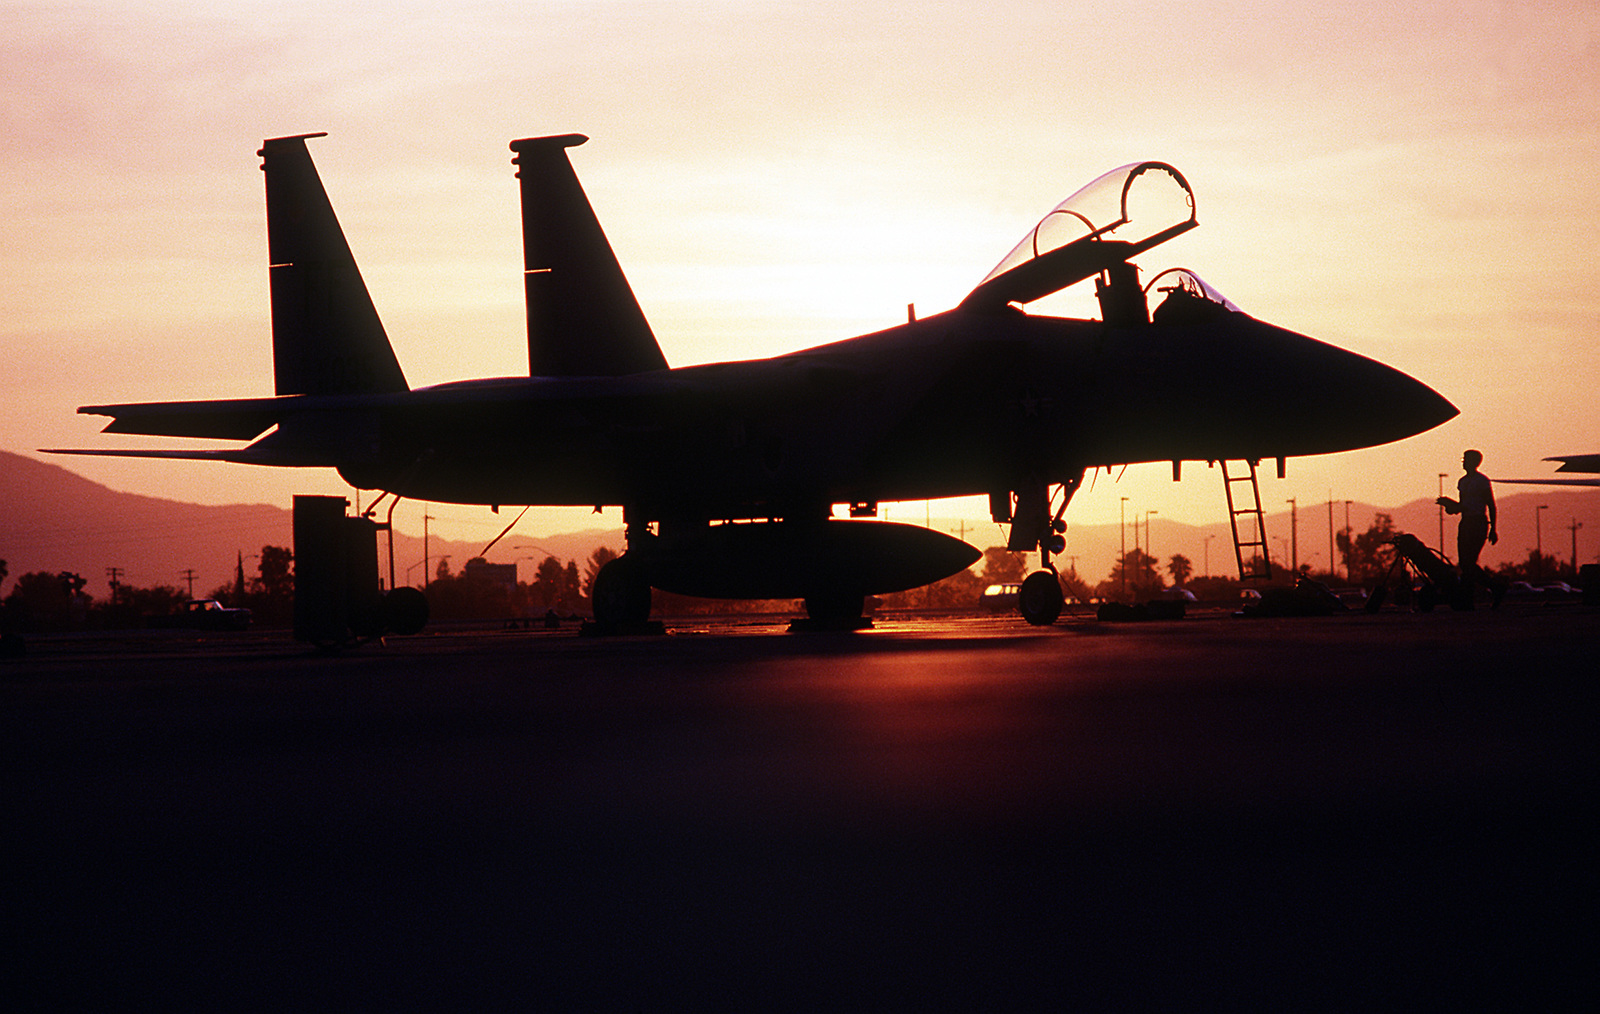 An F-15C Eagle aircraft of the 1ST Tactical Fighter Wing is silhouetted against the sunrise while on a combat patrol near the Iraqi border during Operation Desert Shield